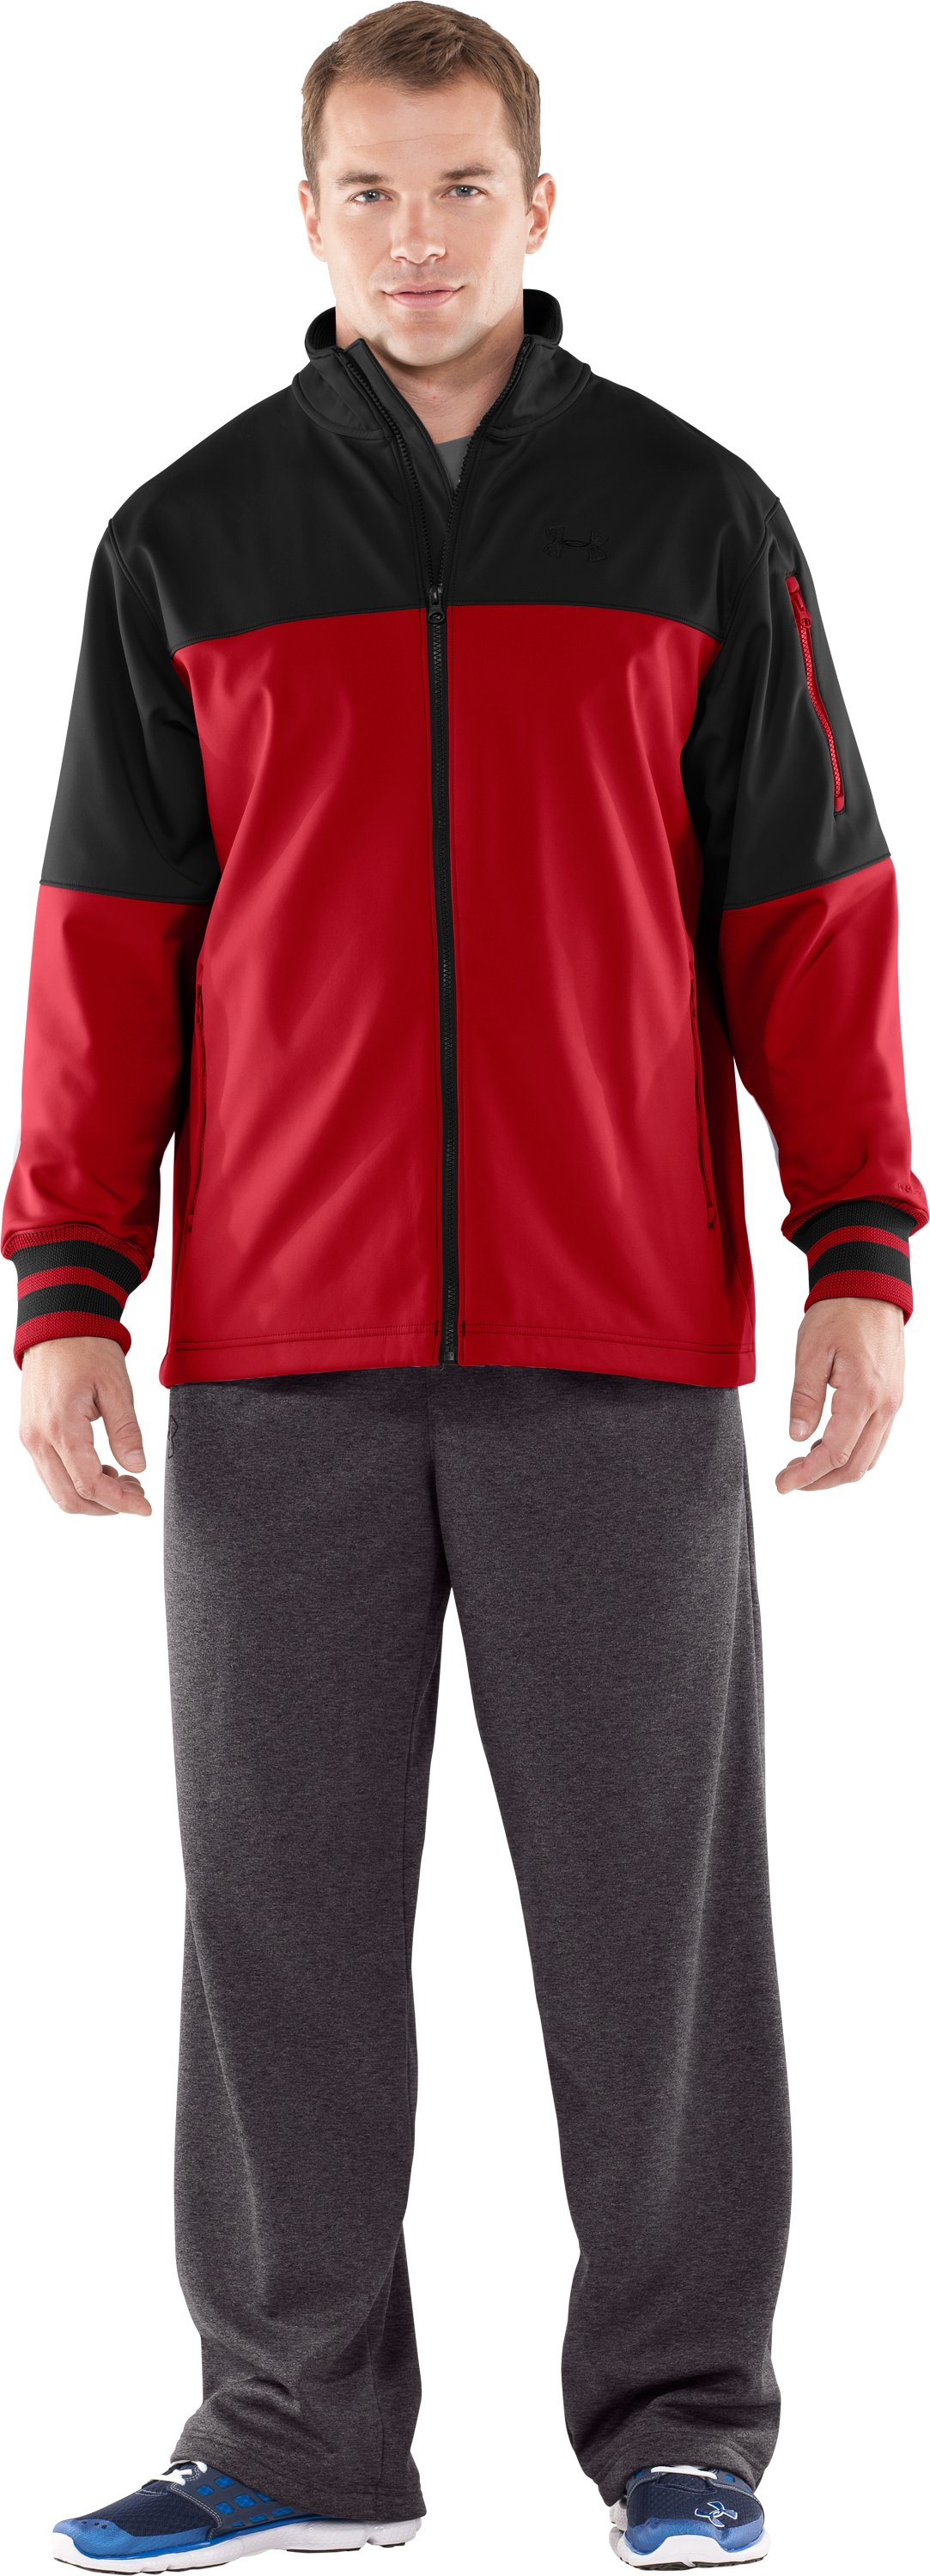 Men's UA Contender Storm Softshell Jacket, full size